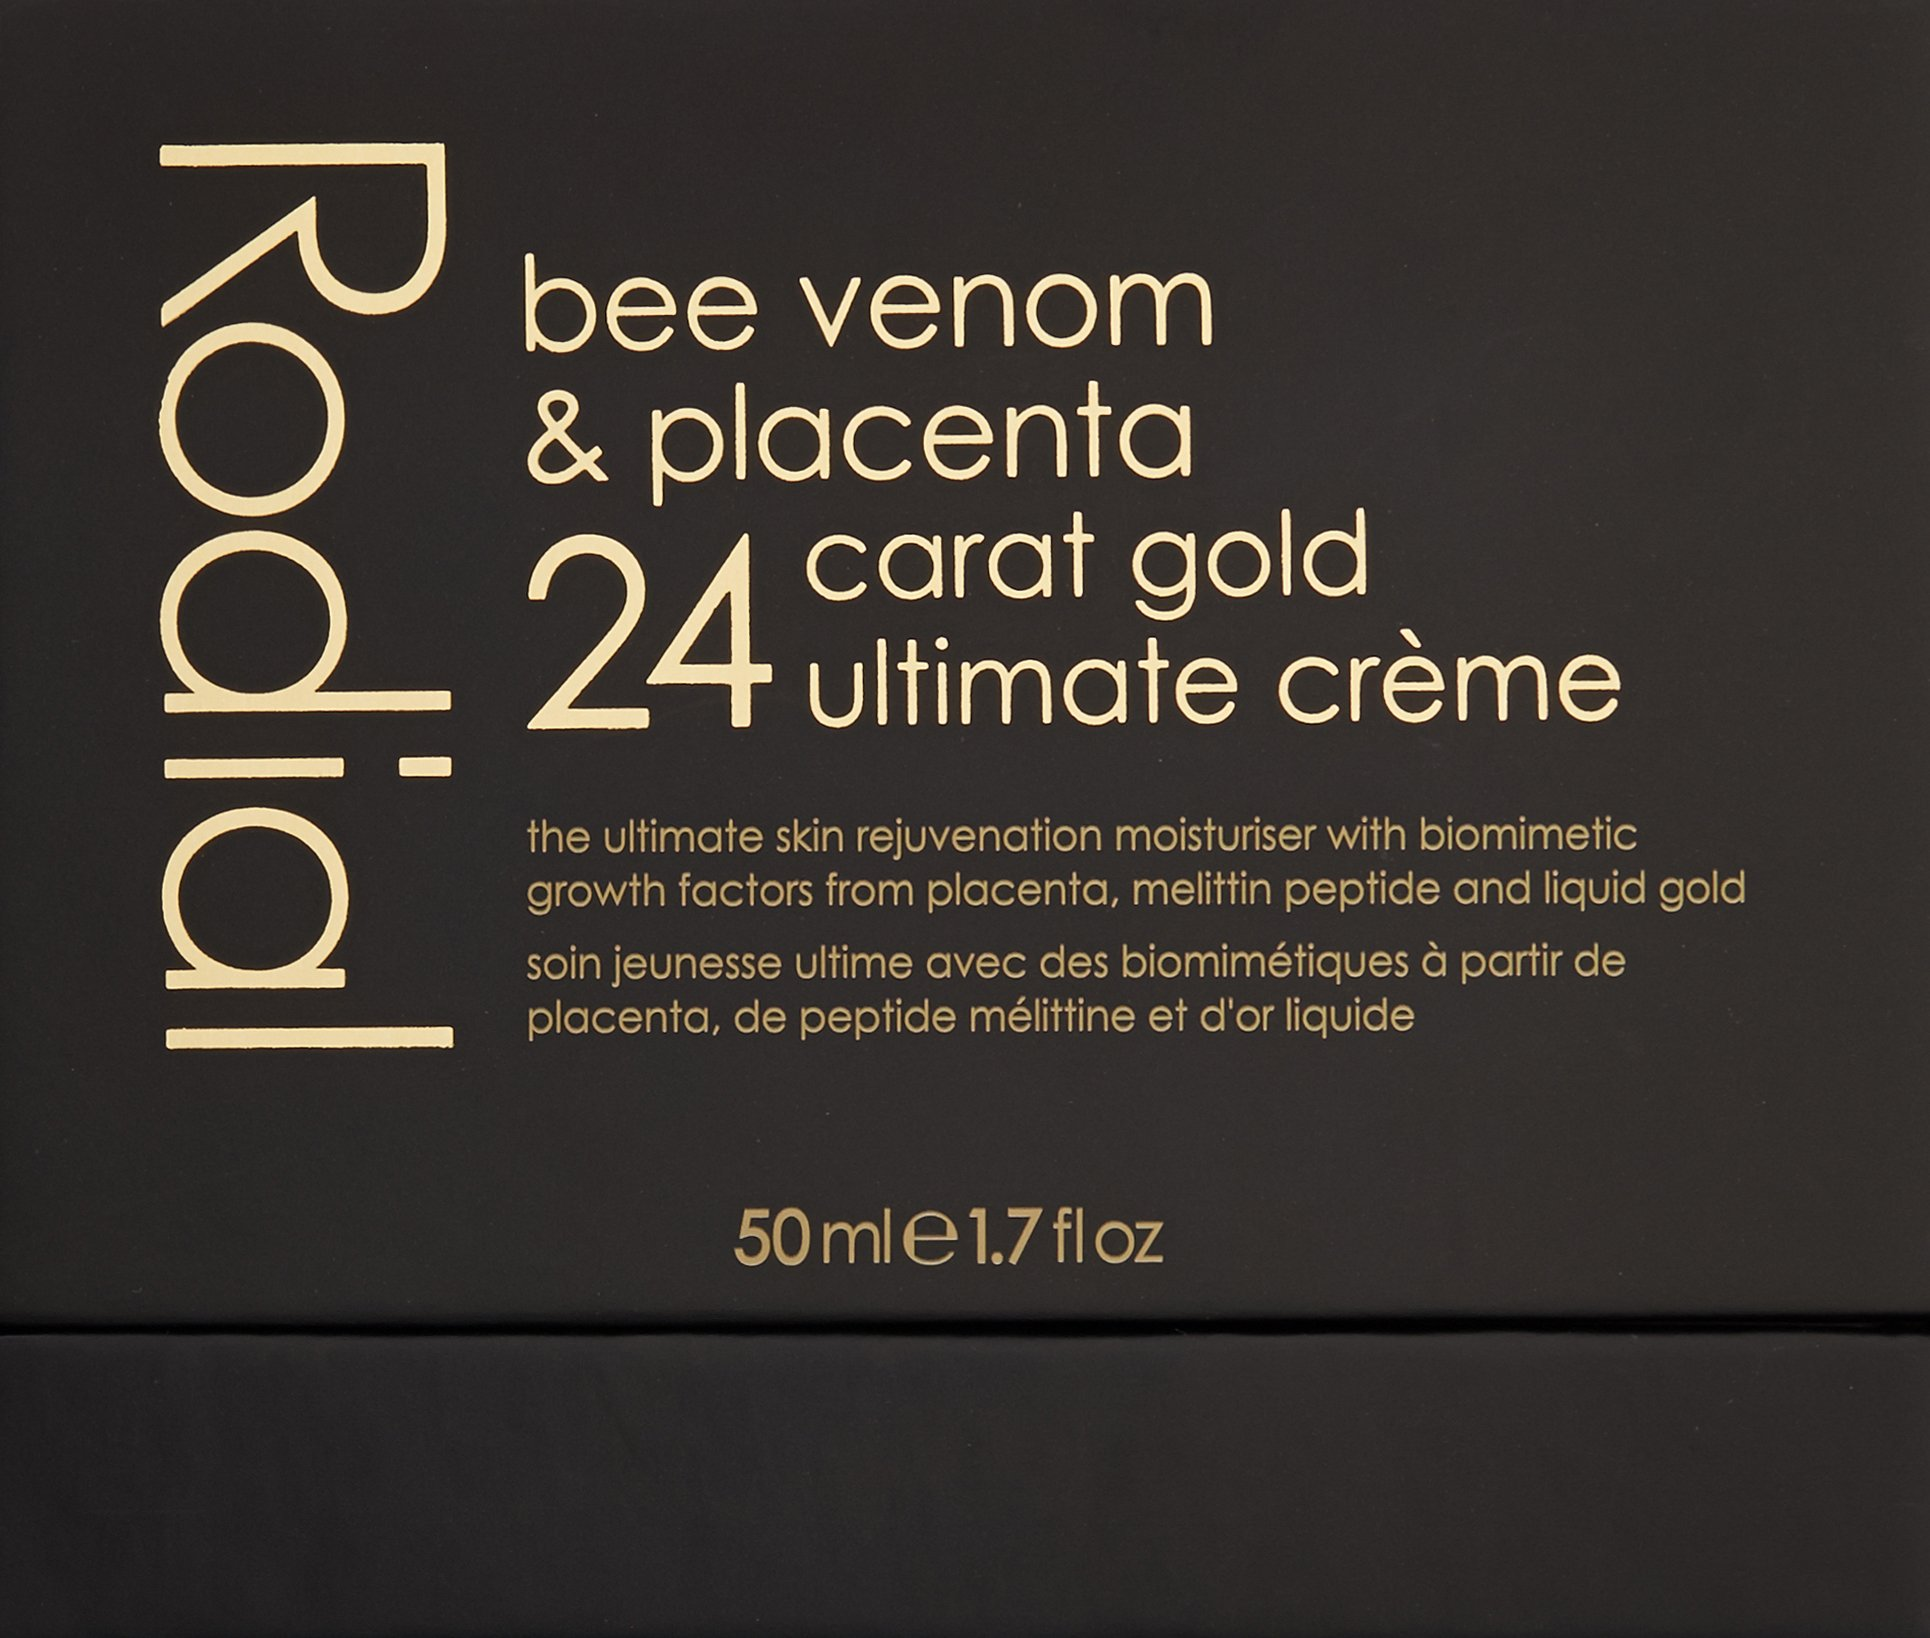 Rodial Bee Venom And Placenta 24 Carat Gold Ultimate Crème, 1.7 Fl Oz